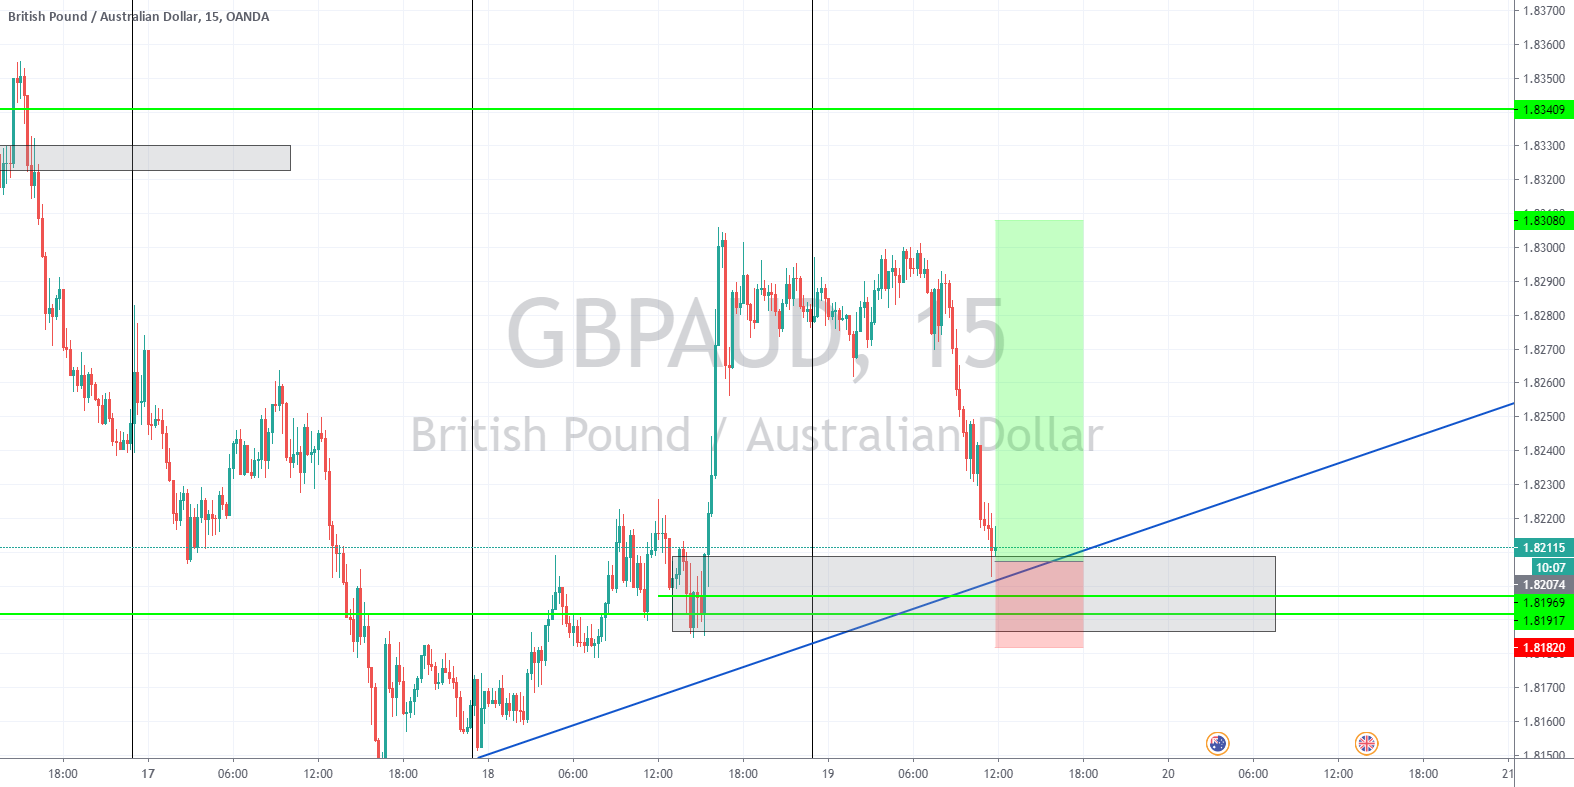 trade allert GBPAUD BUY by market for OANDA:GBPAUD by wanqashe — TradingView